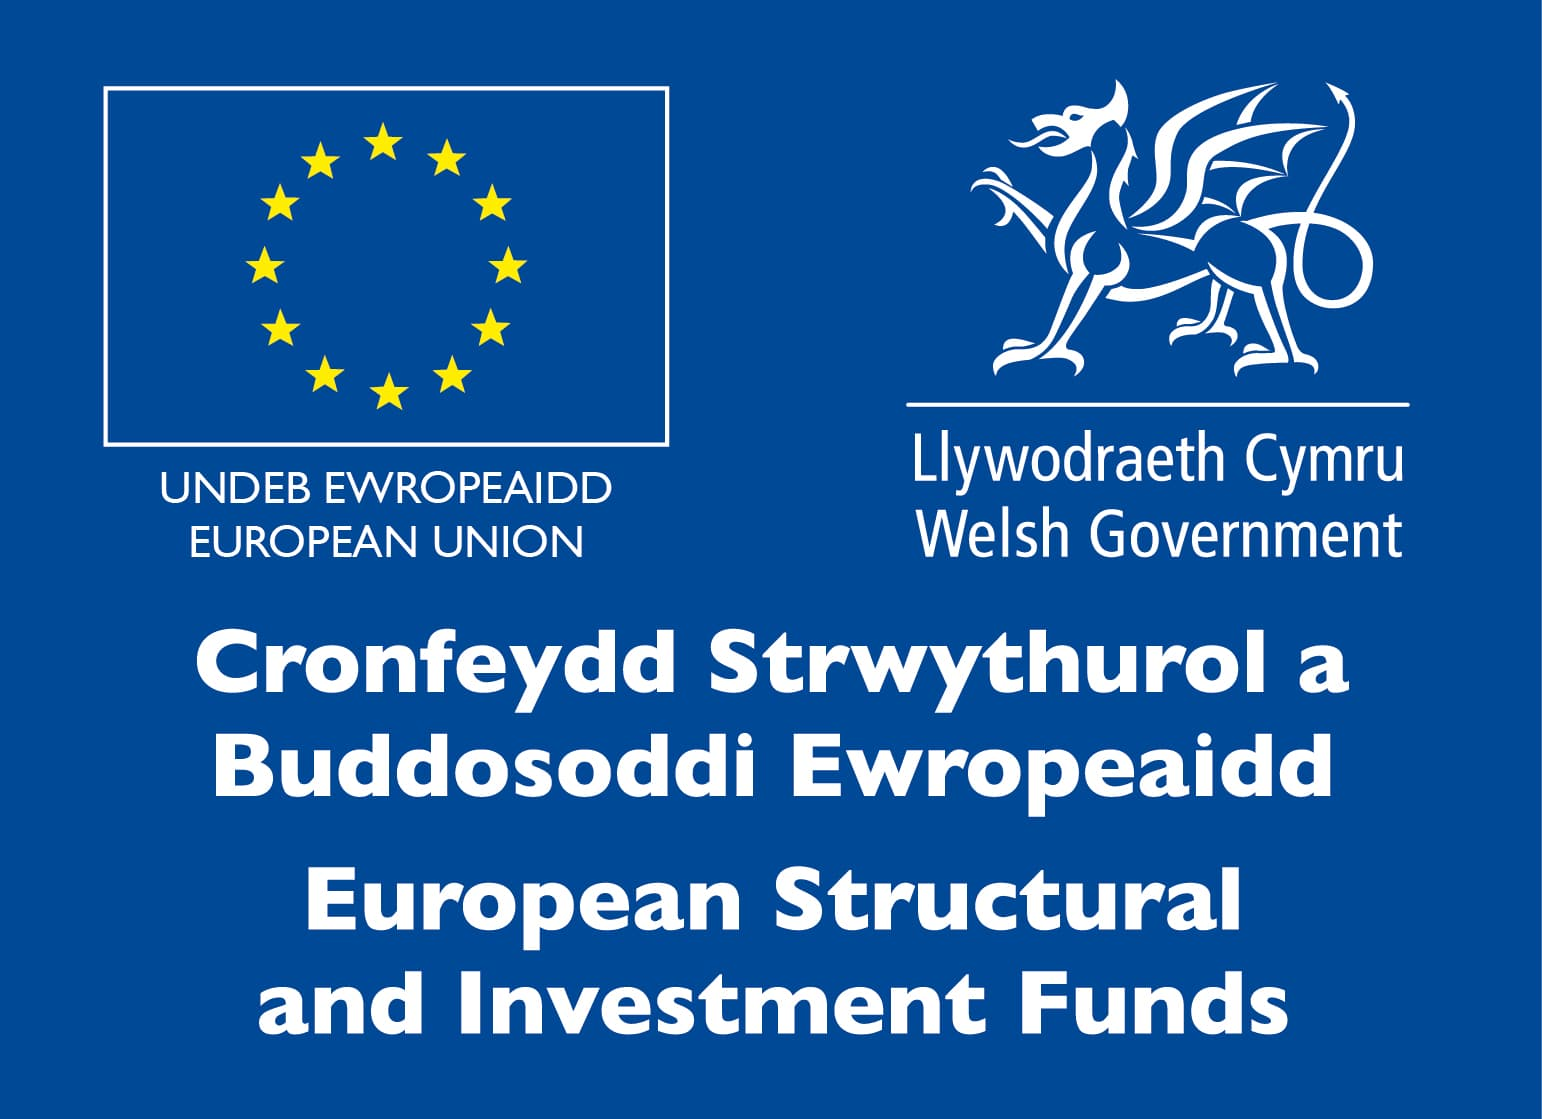 European Social and Investment Funds